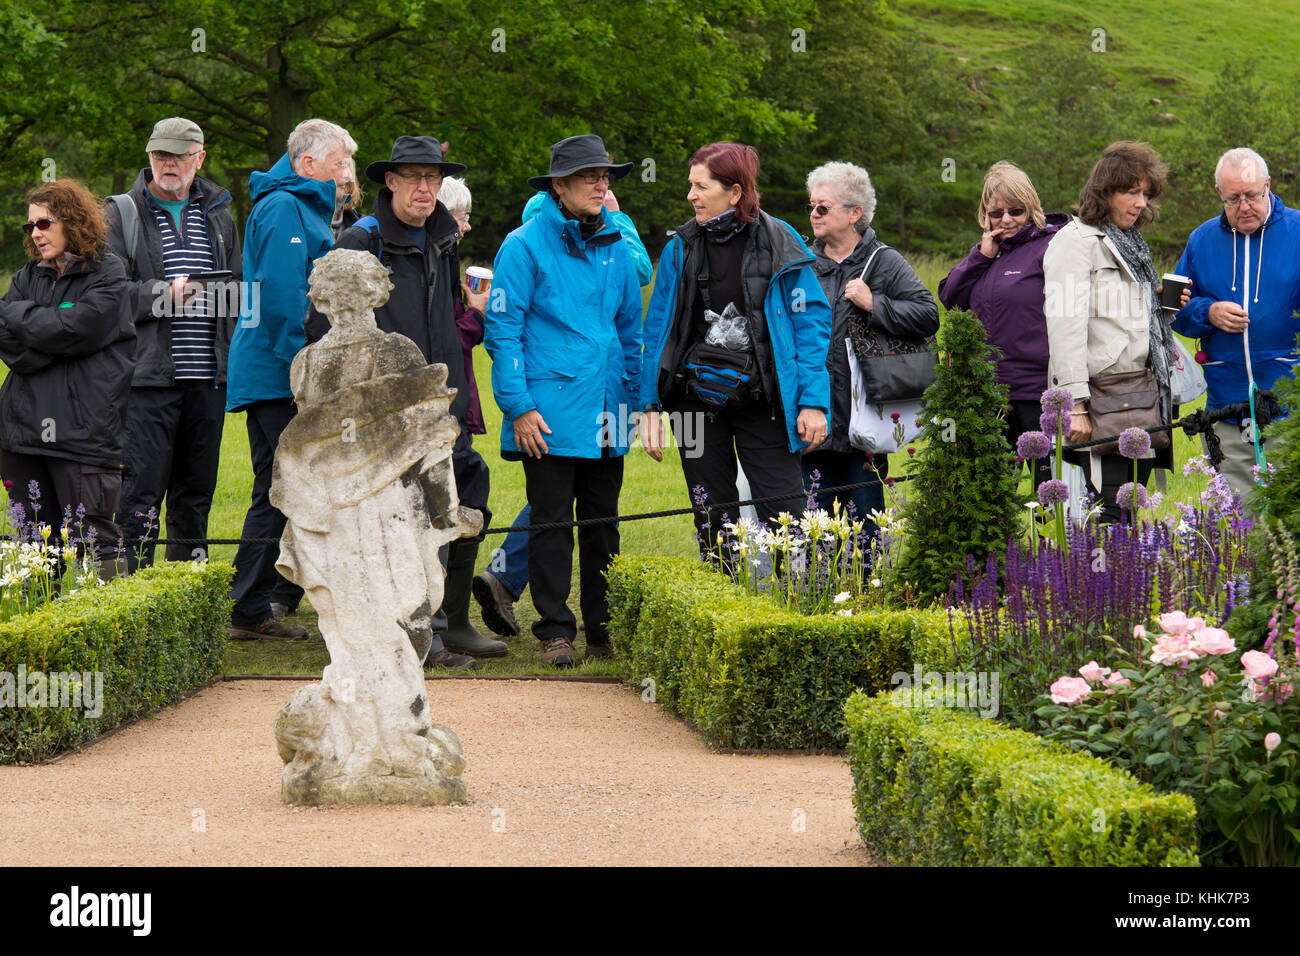 Members of the public viewing 'Experience Peak District & Derbyshire Garden' - RHS Chatsworth Flower - Stock Image